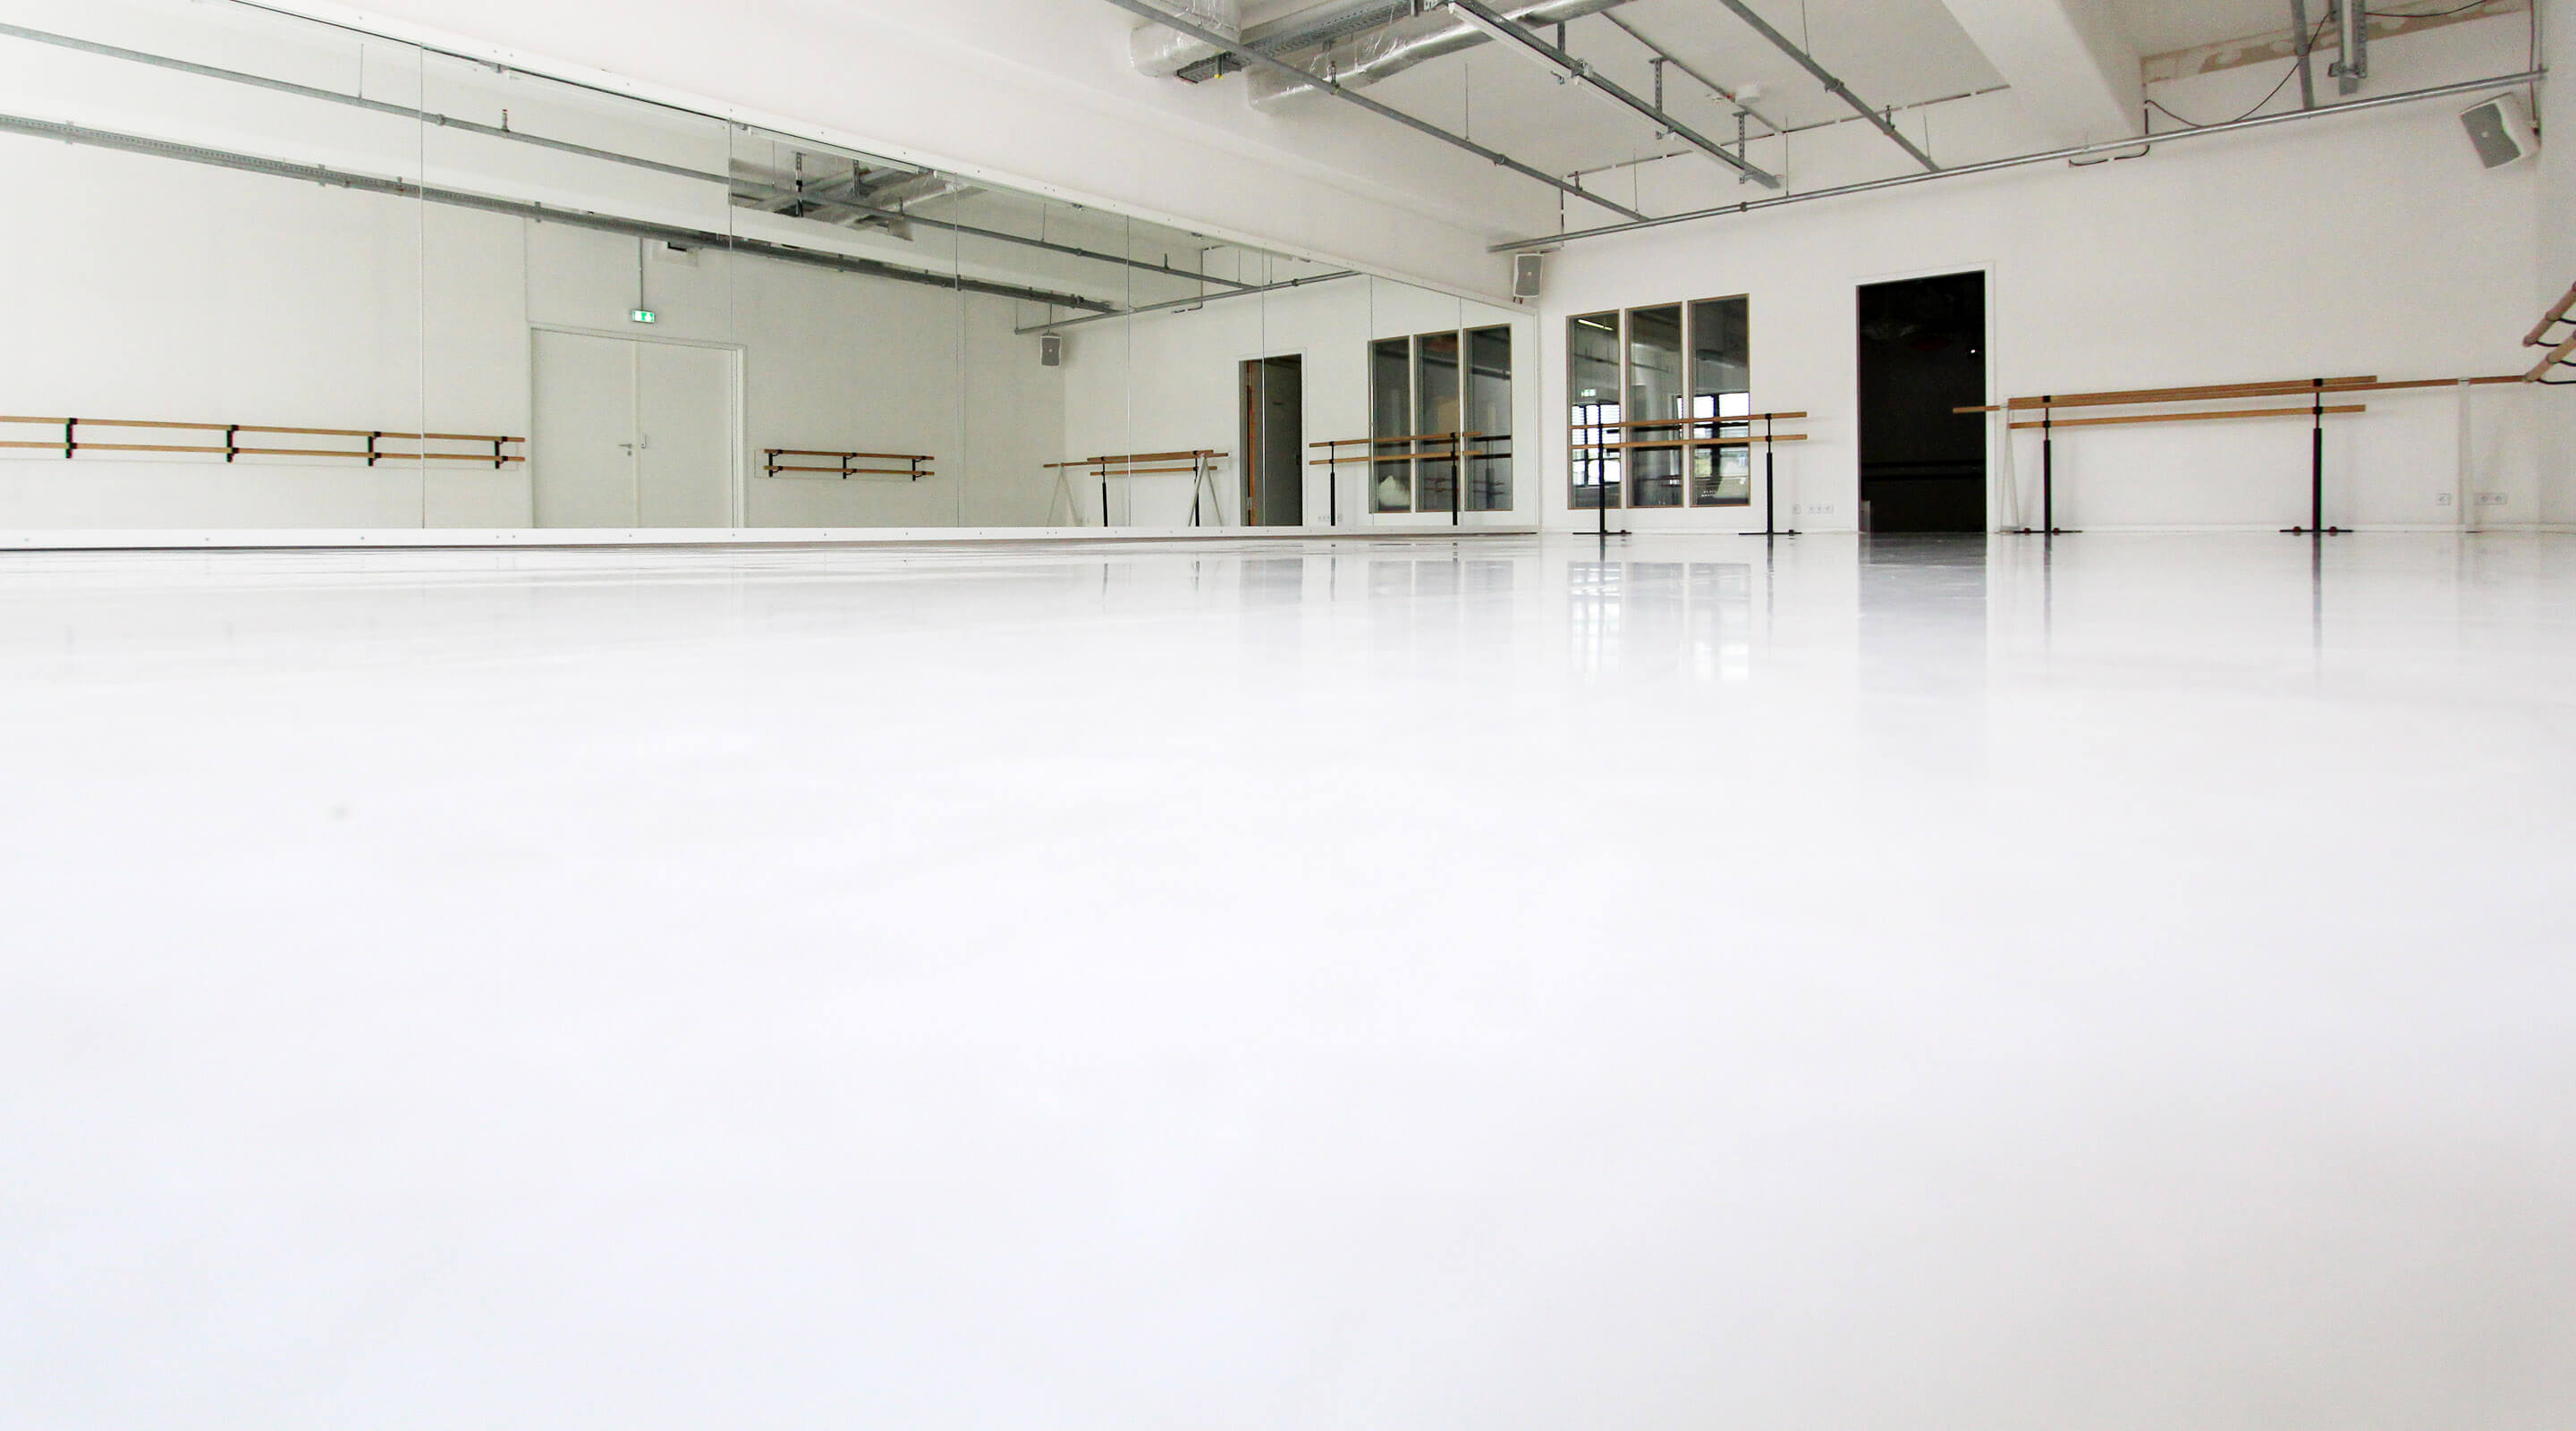 Studio K 1 - Tanzstudio motion*s Berlin